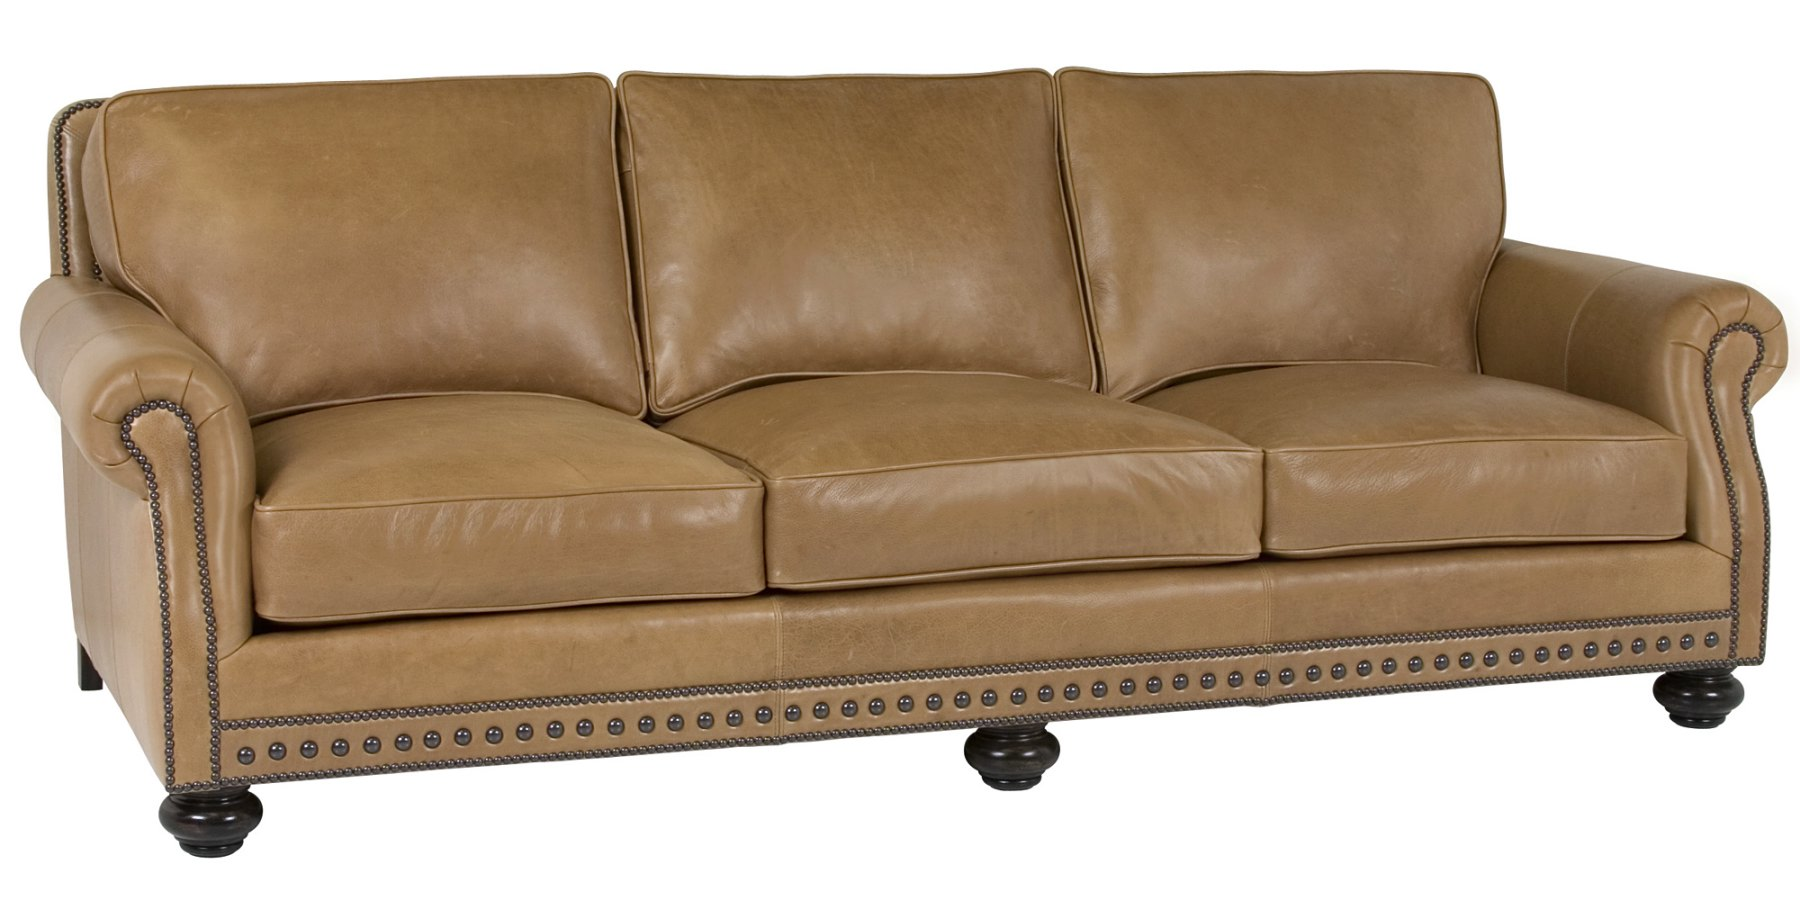 Rainbow tz blog the living room sofa za aina tofauti for Traditional leather furniture